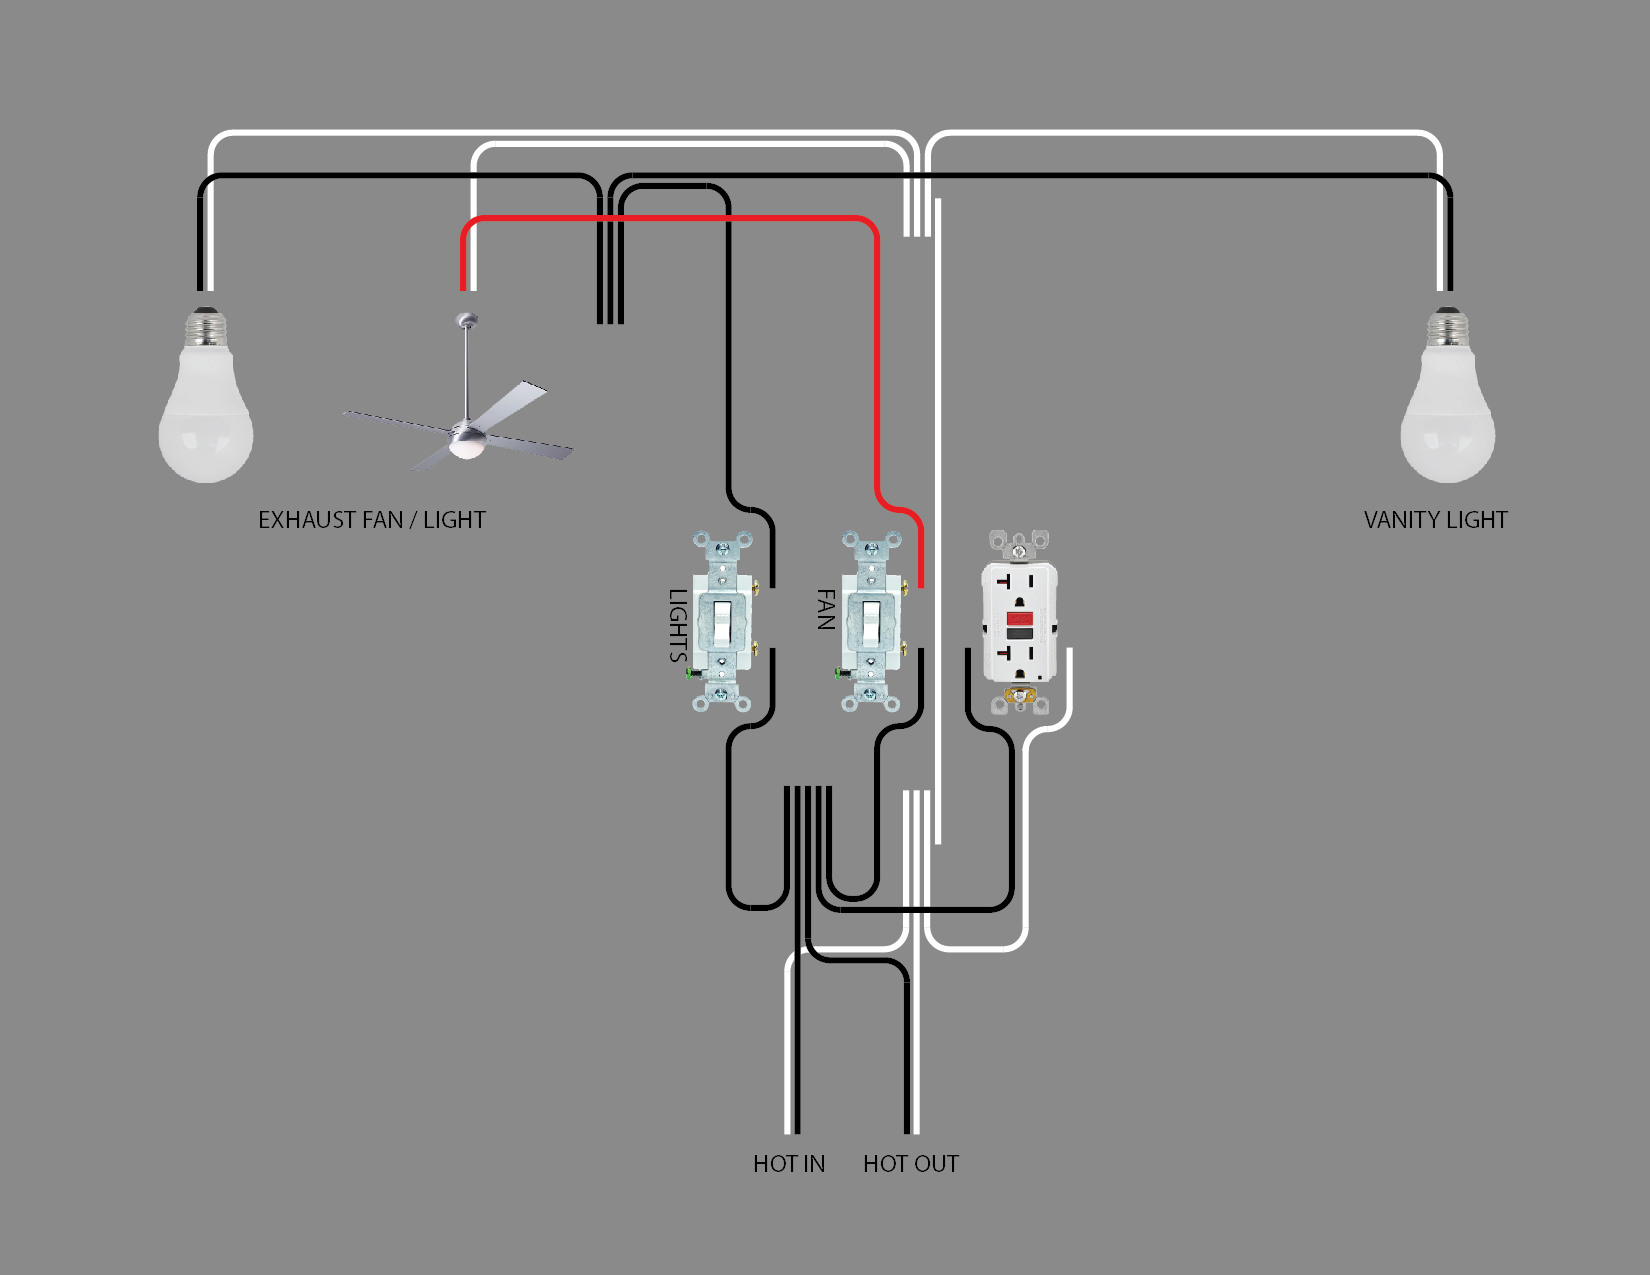 Bathroom Lighting Wiring Diagram | DIY Home Improvement Forum | Bathroom Wiring Diagrams For Lights |  | DIY Chatroom